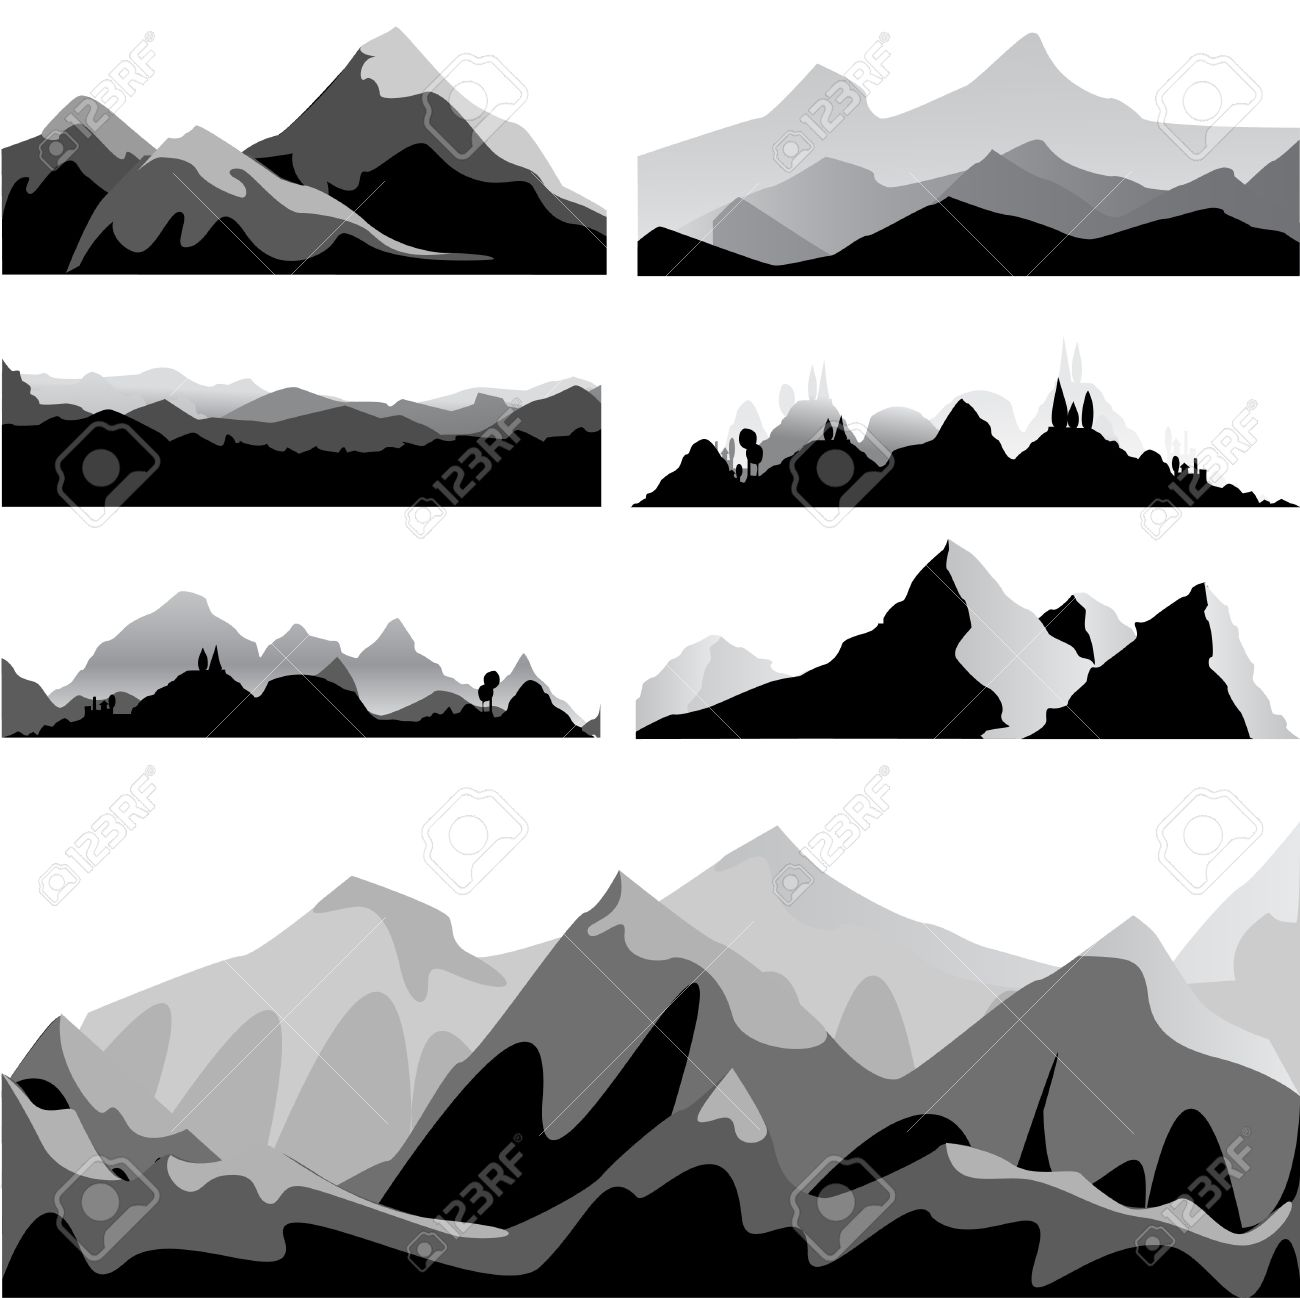 Mountain Silhouette mountain set royalty free cliparts, vectors, and stock